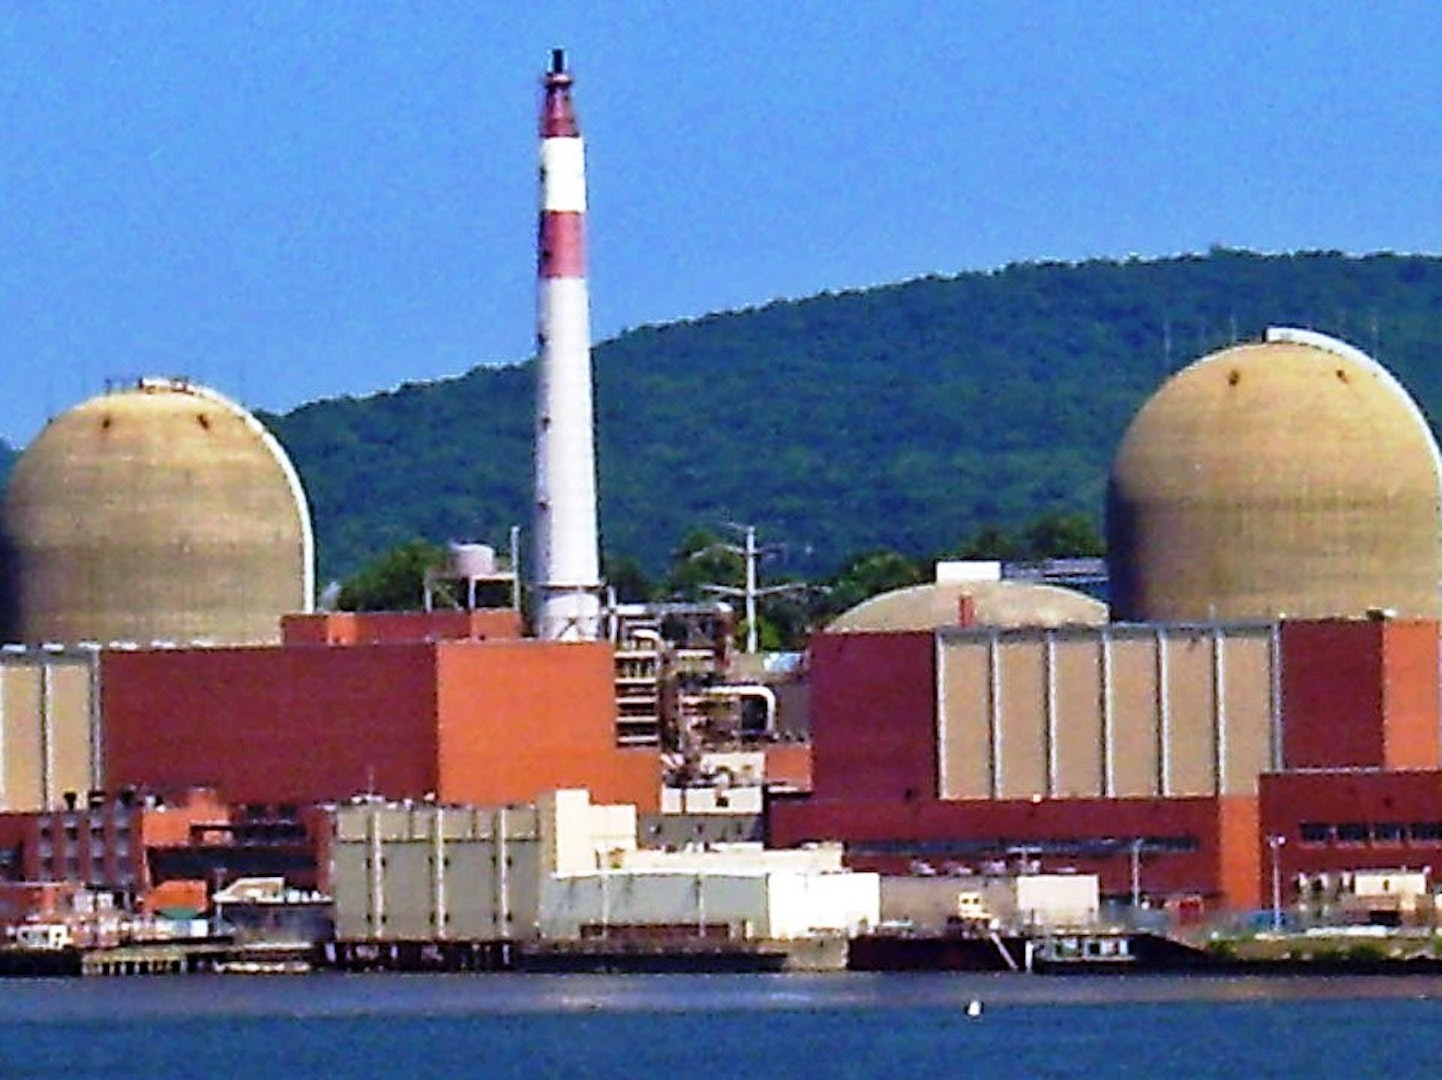 long streams of excrement from birds shut down ny nuclear power plant